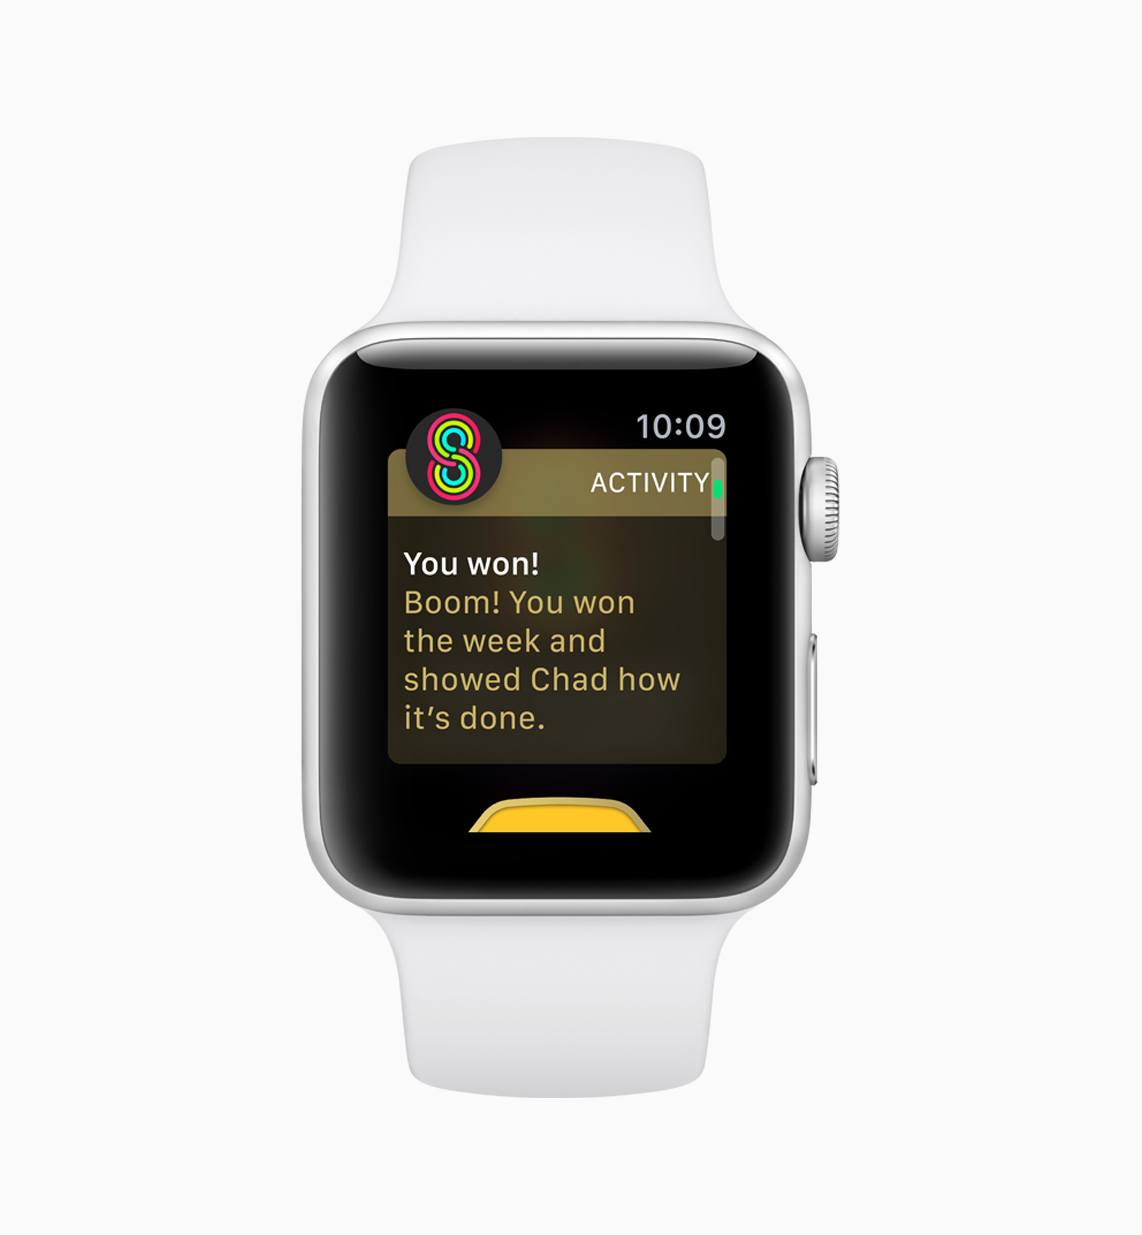 Apple-watchOS_5-competitions-03-screen-06042018.jpg